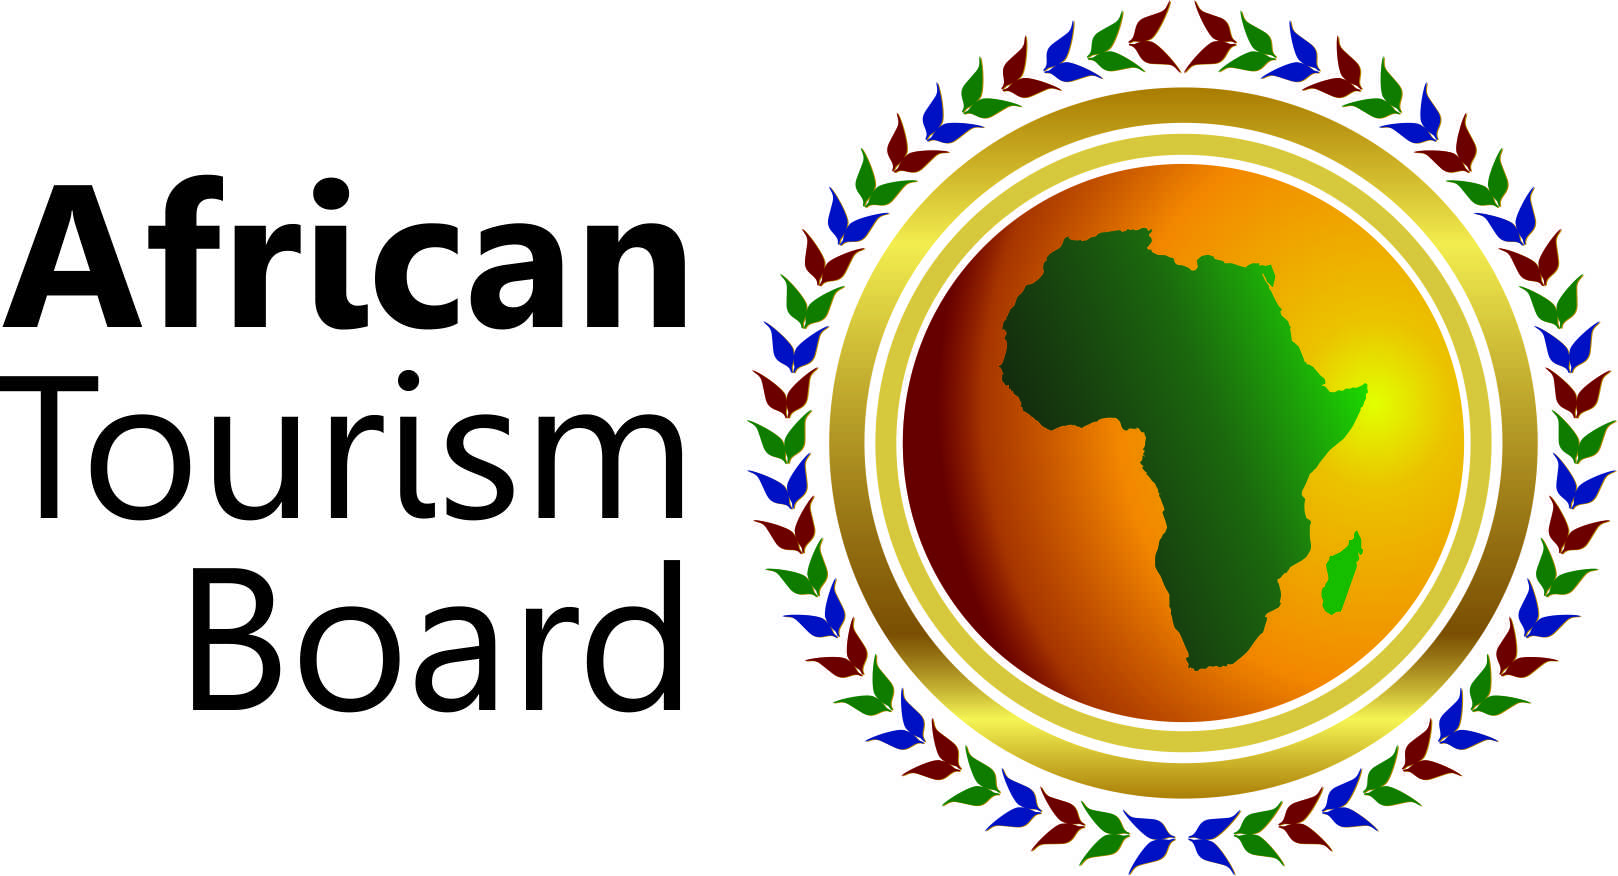 African Tourism Board is now in business